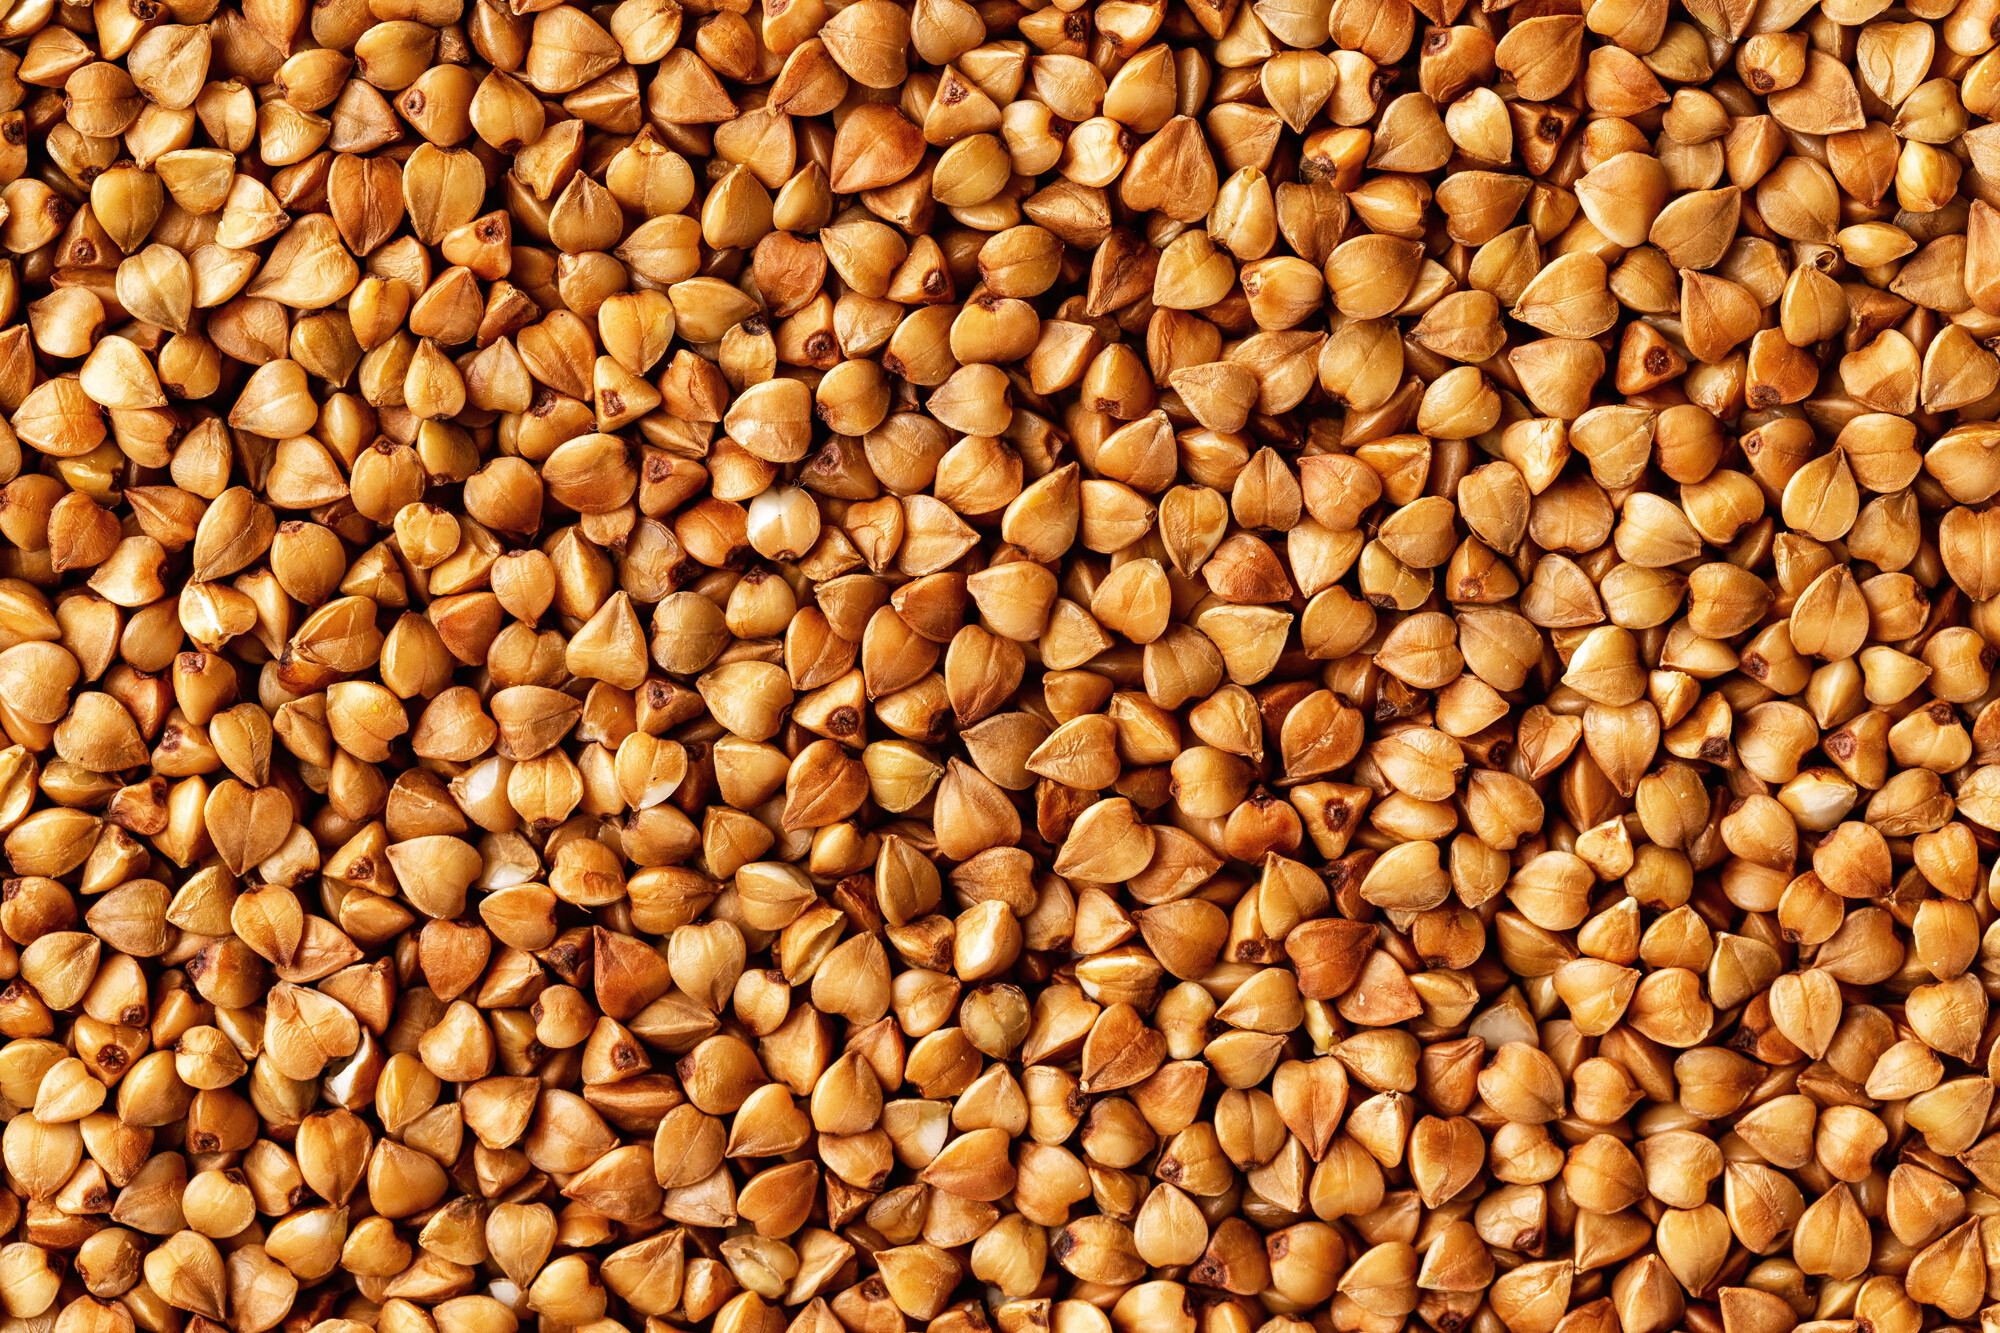 Get to know farro and other superfood whole grains